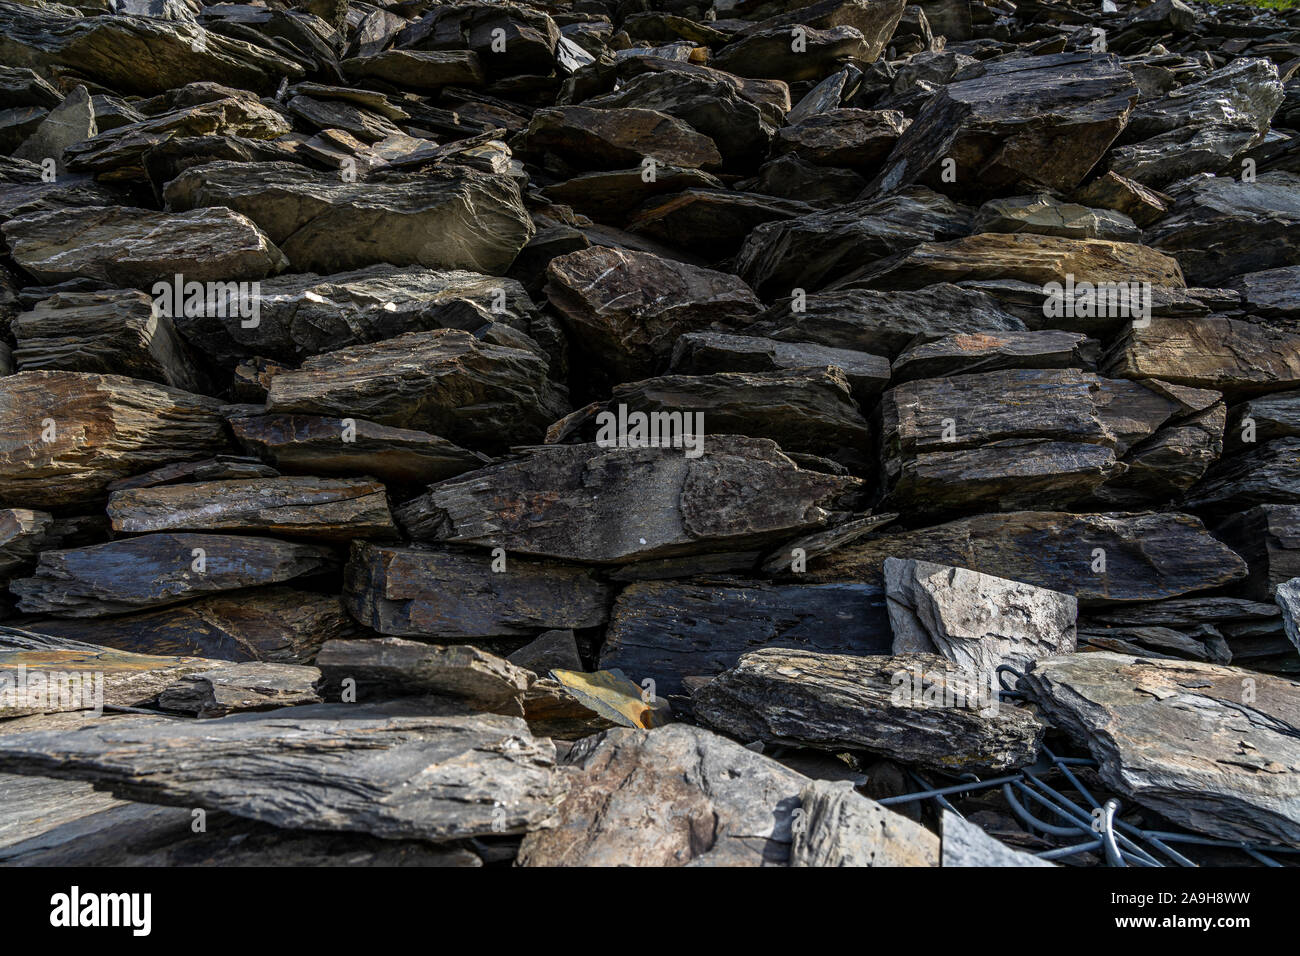 rock formations on rheinsteig hiking trail in the middle rhine valley, germany Stock Photo